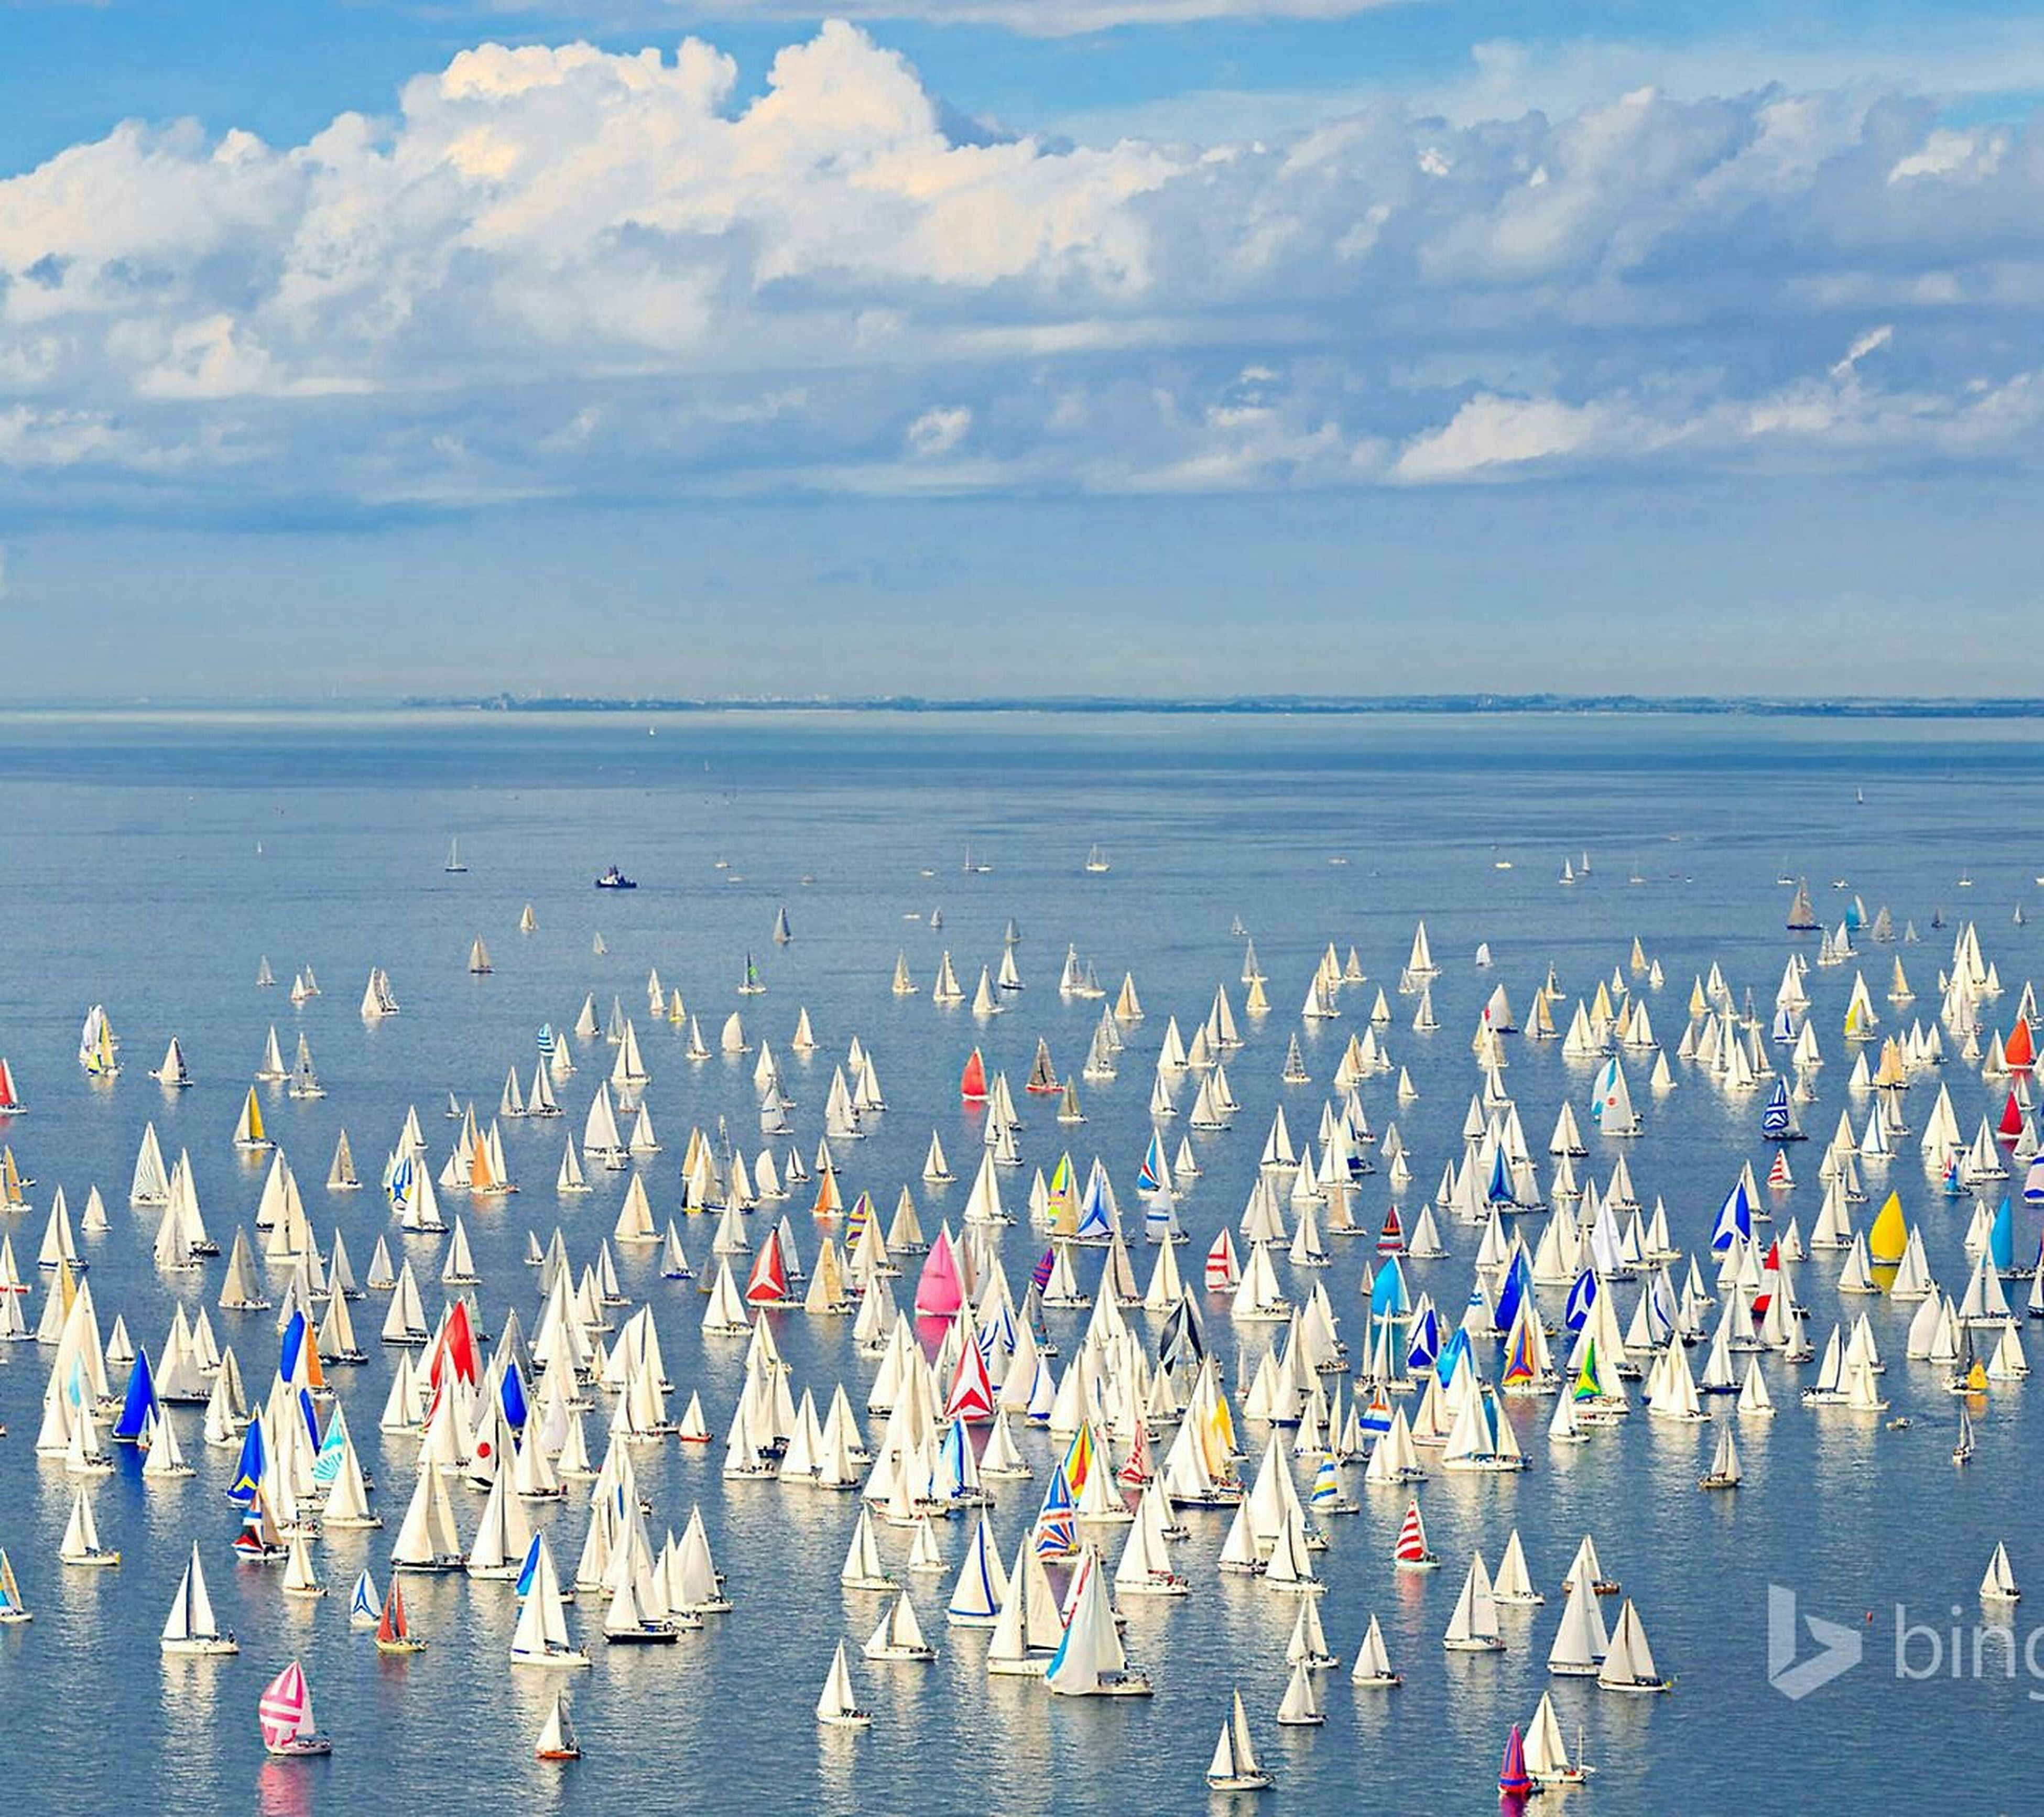 water, sea, large group of people, beach, horizon over water, sky, shore, beauty in nature, nature, bird, scenics, vacations, flock of birds, tranquility, tranquil scene, day, cloud - sky, leisure activity